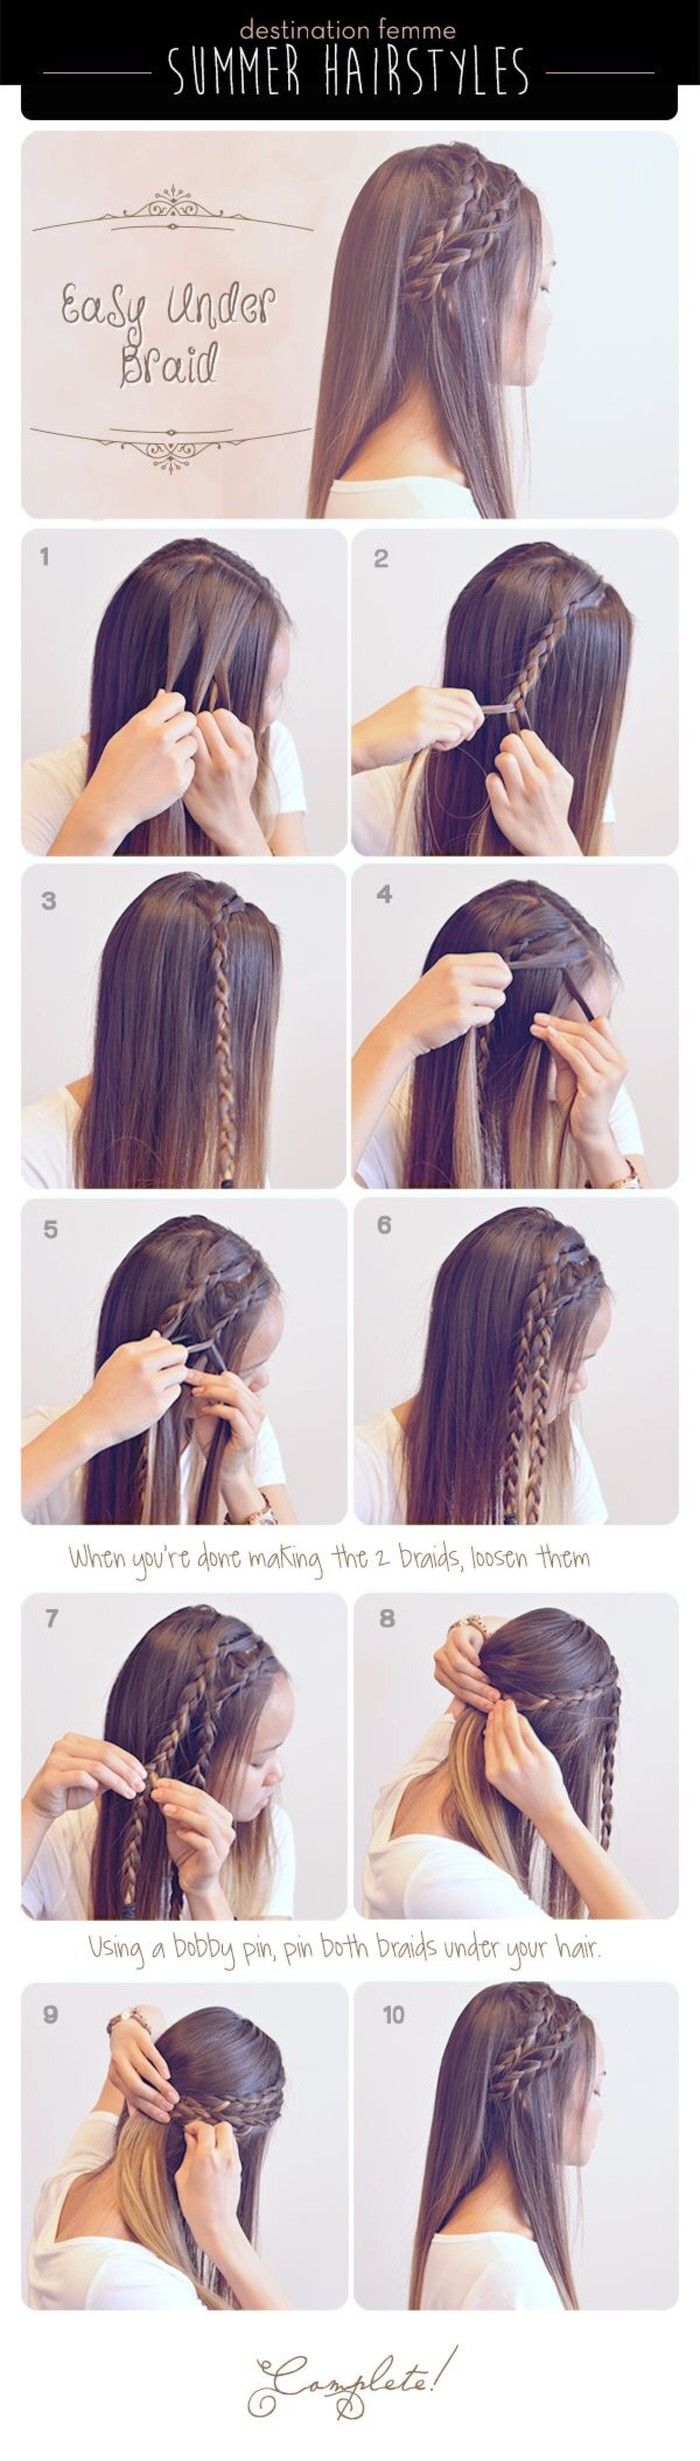 Easy hairstyle for medium